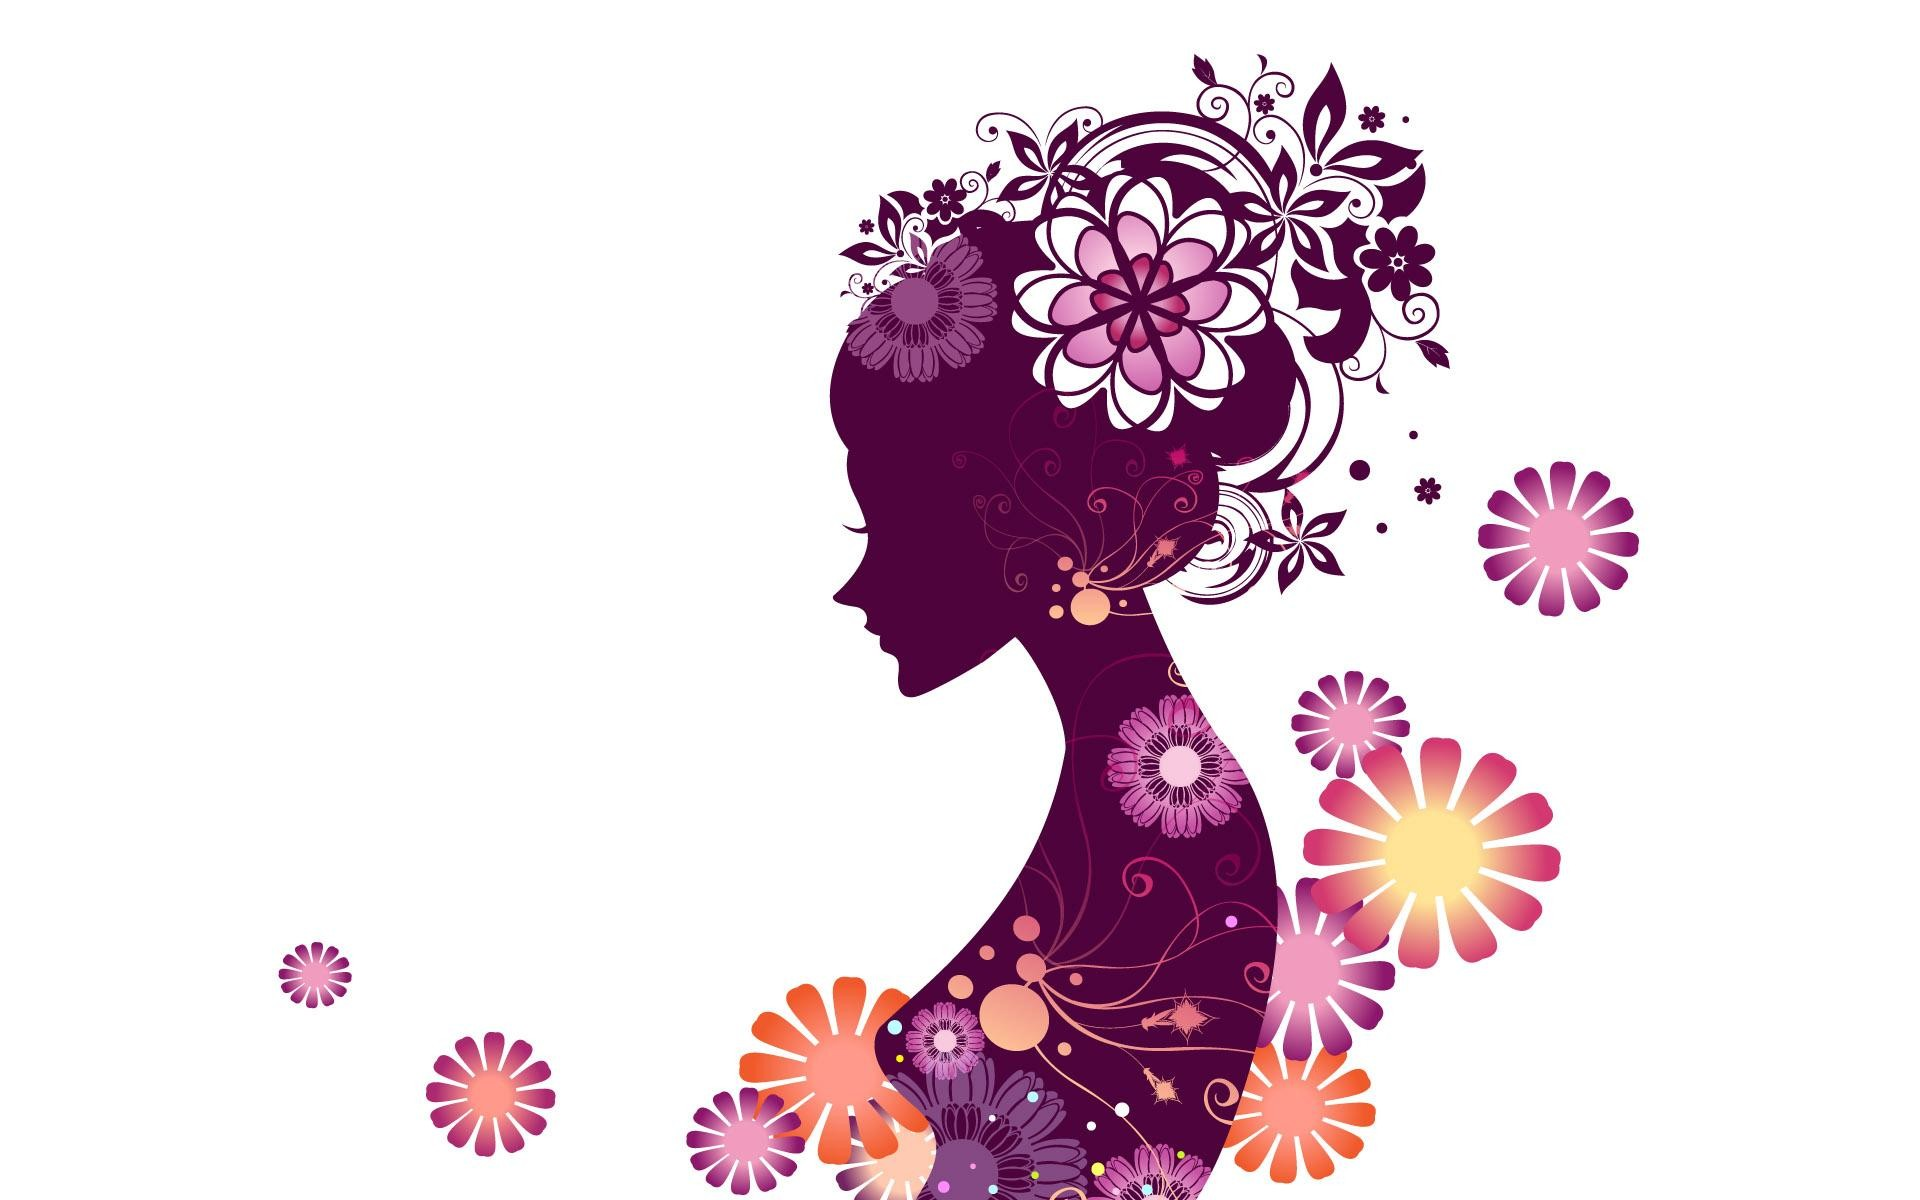 Res: 1920x1200, International Woman's Day Wallpapers 15 - 1920 X 1200